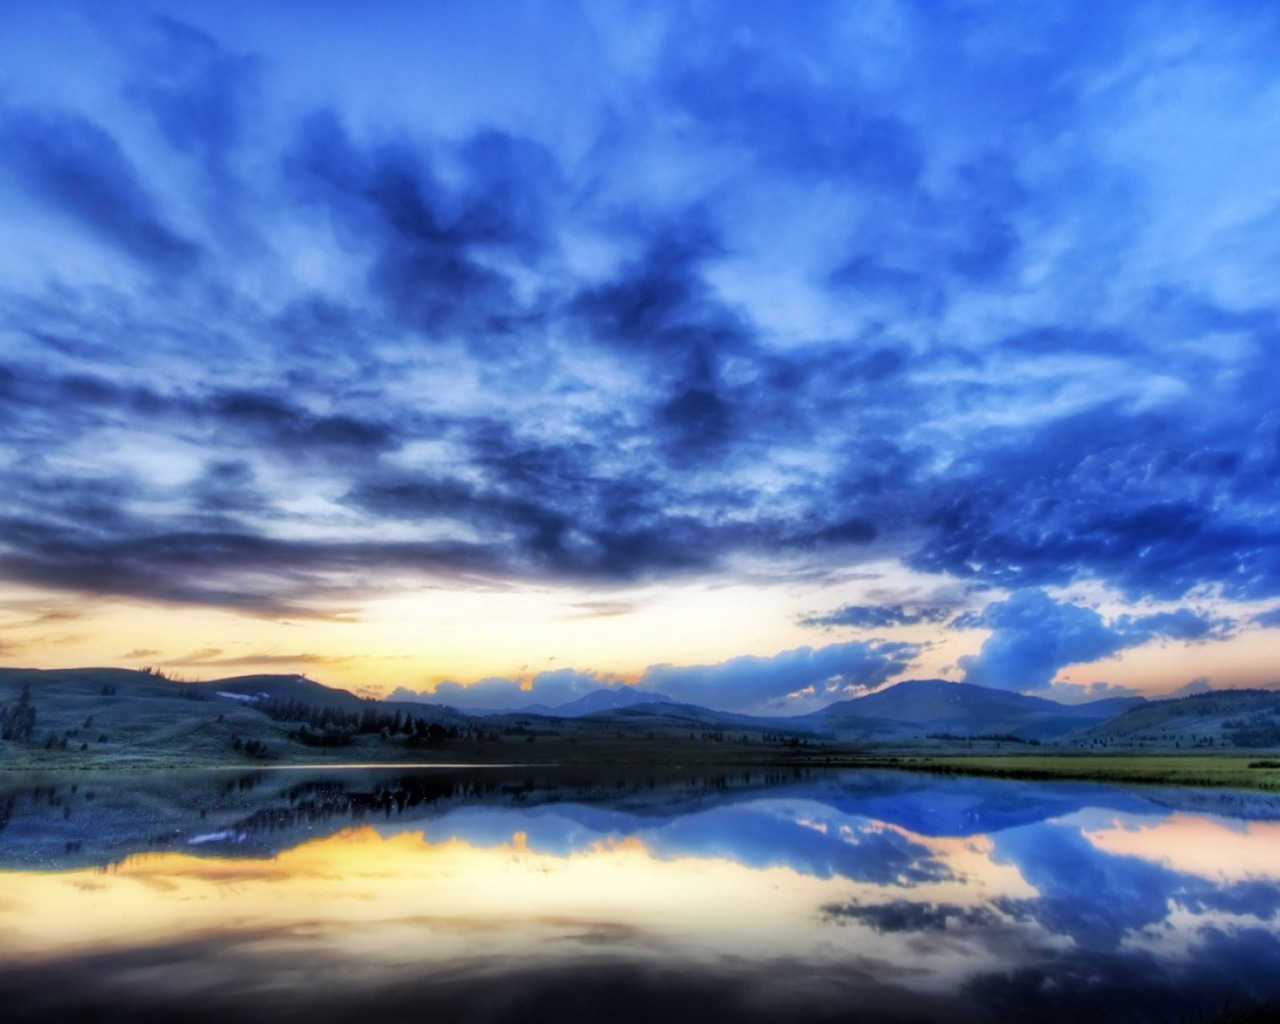 All Wallpapers   Wallpapers 2012: nature wallpapers hp laptop